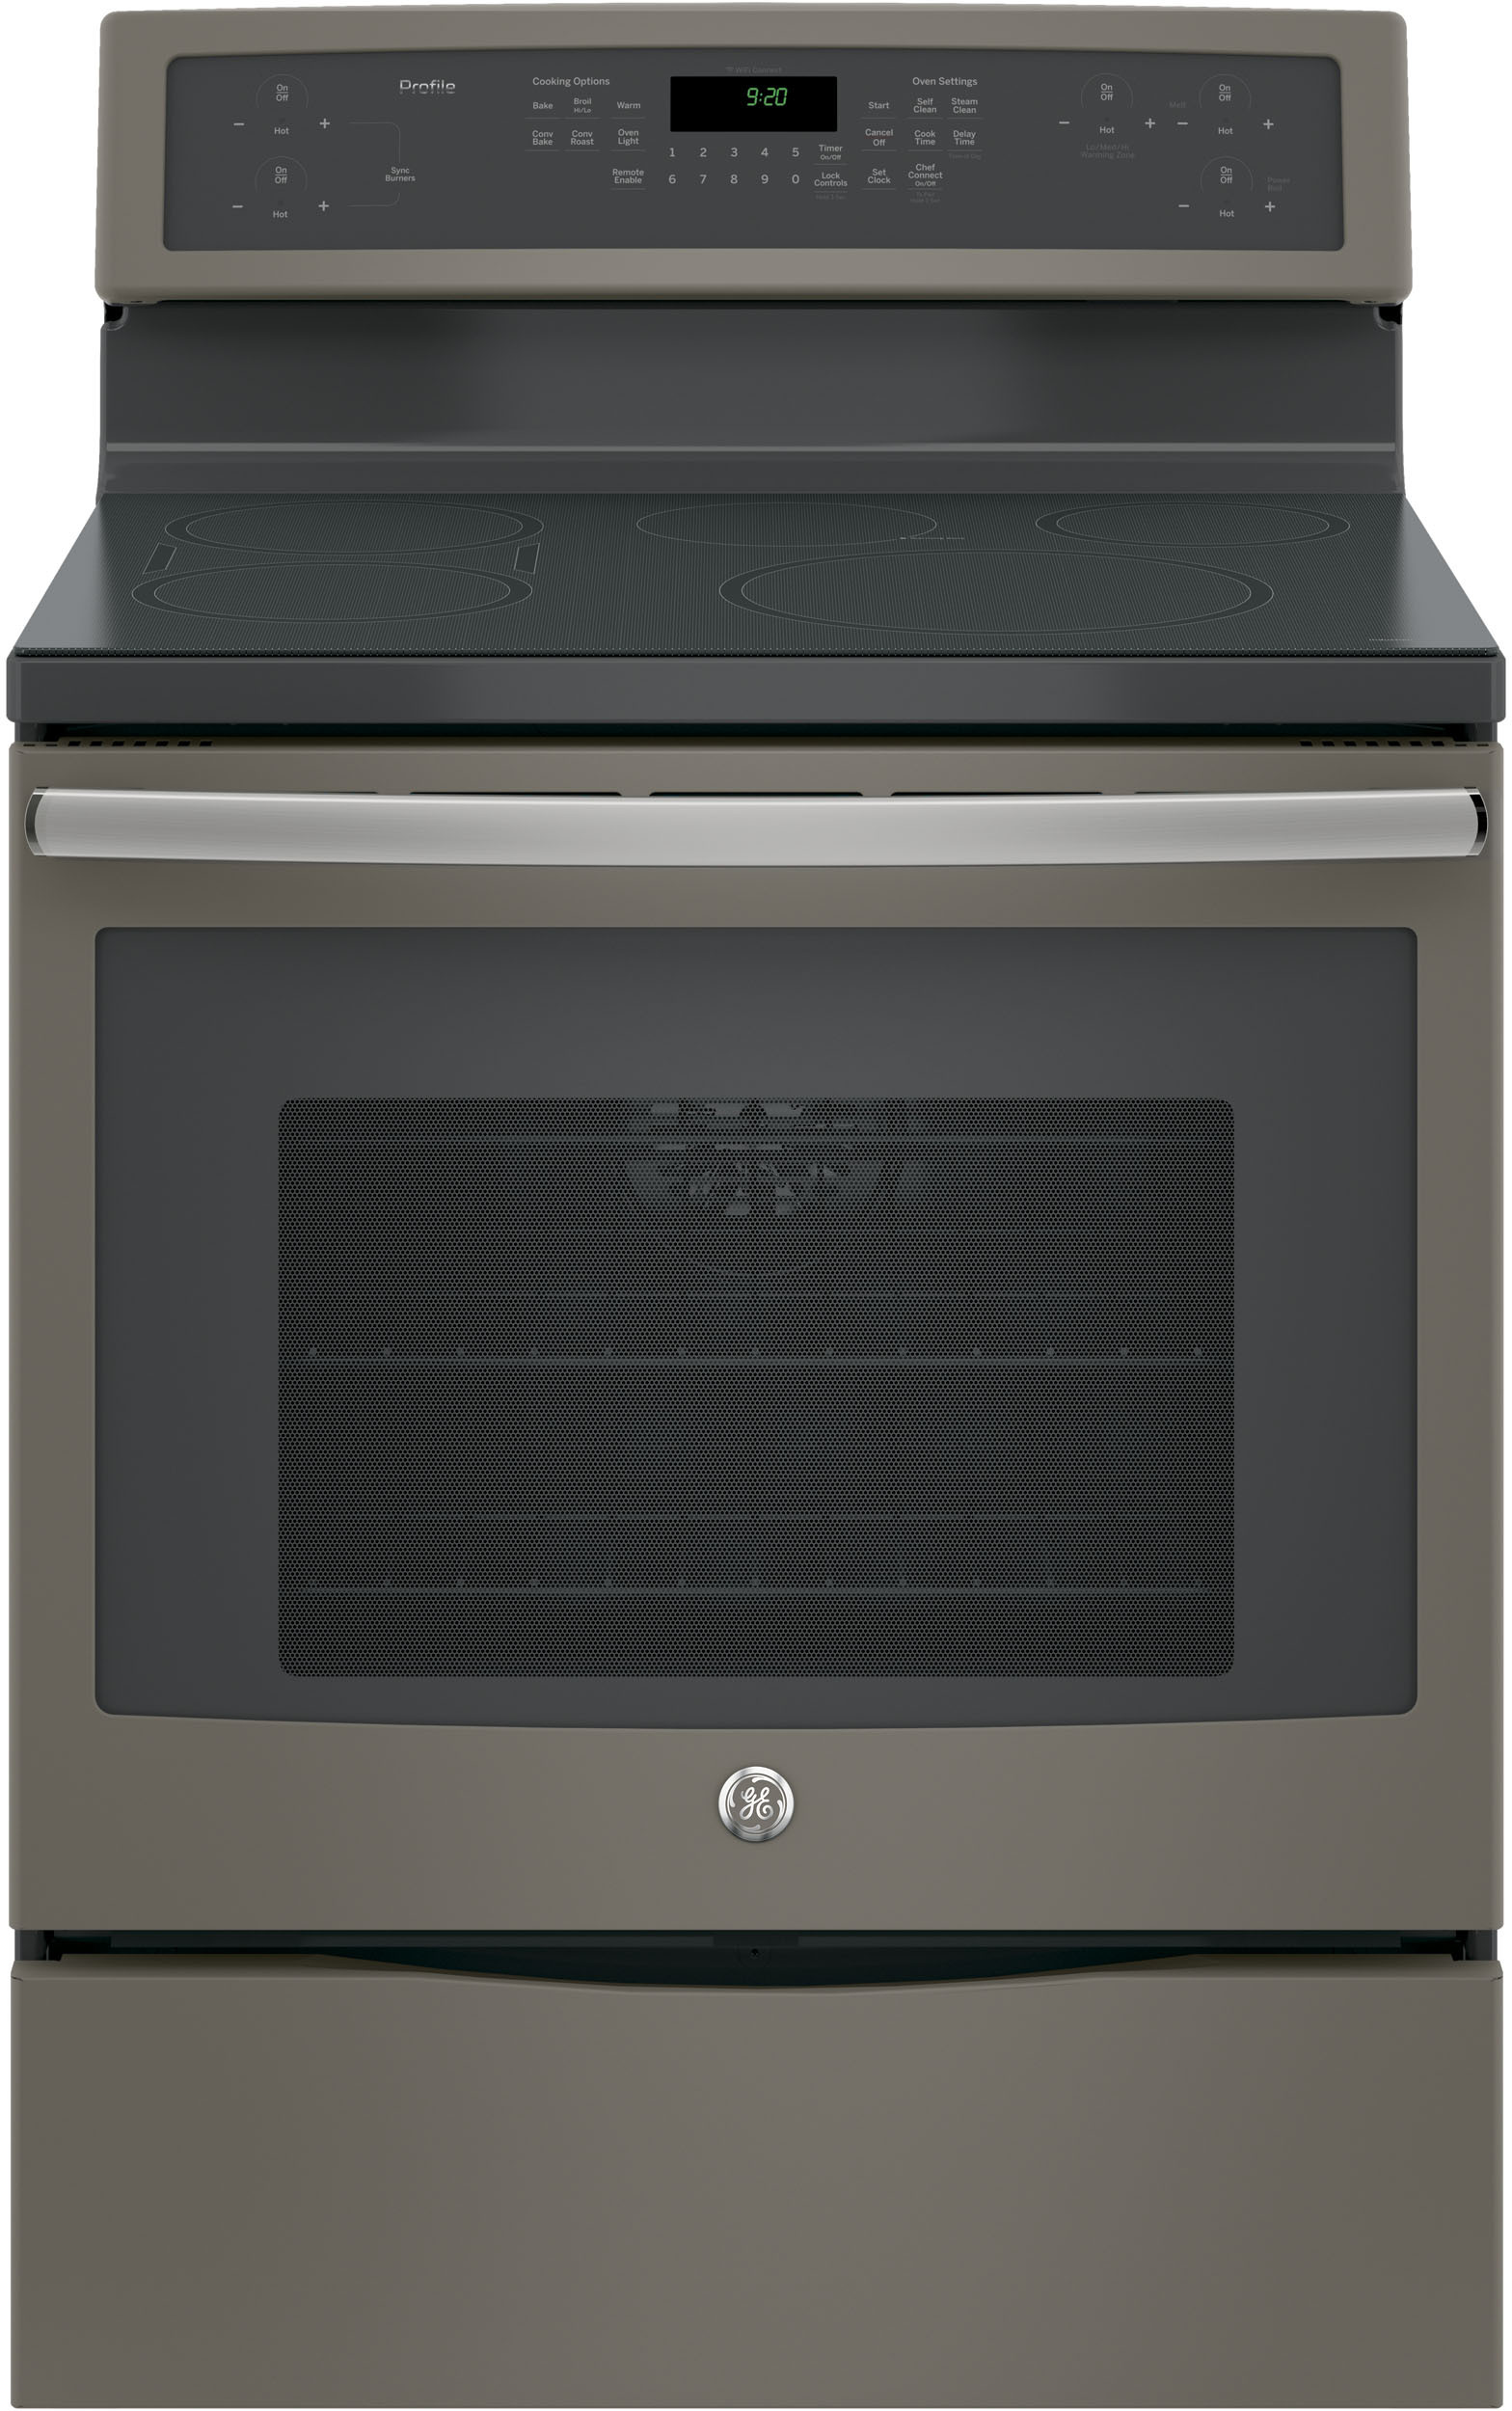 Ge Phb920ejes 30 Inch Freestanding Induction Range With True Convection Wifi Connect Chef Synchronized Bridge Element Warming Zone